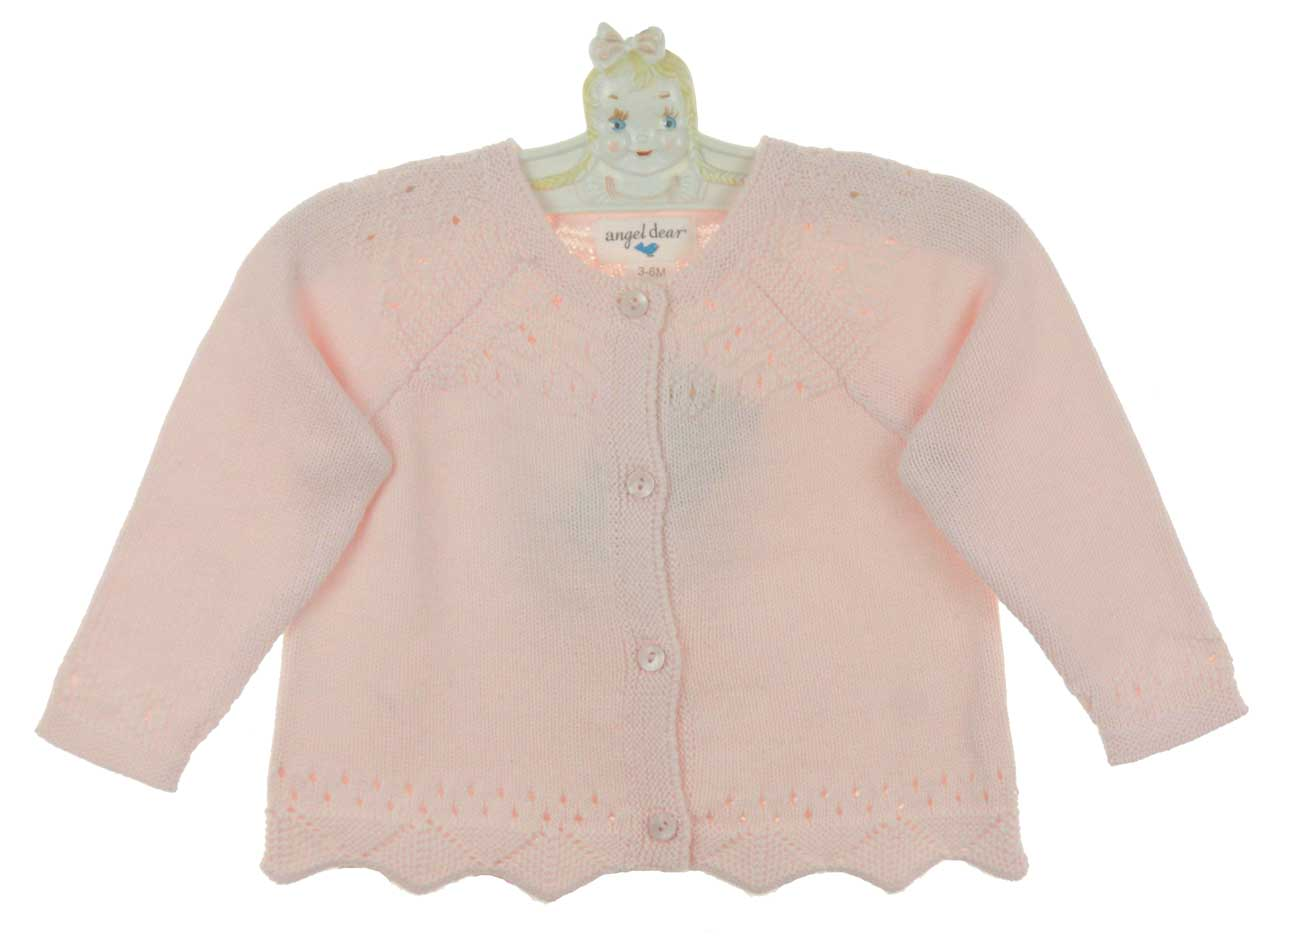 Angel Dear pink cotton baby sweater,Angel Dear pink cotton toddler ...